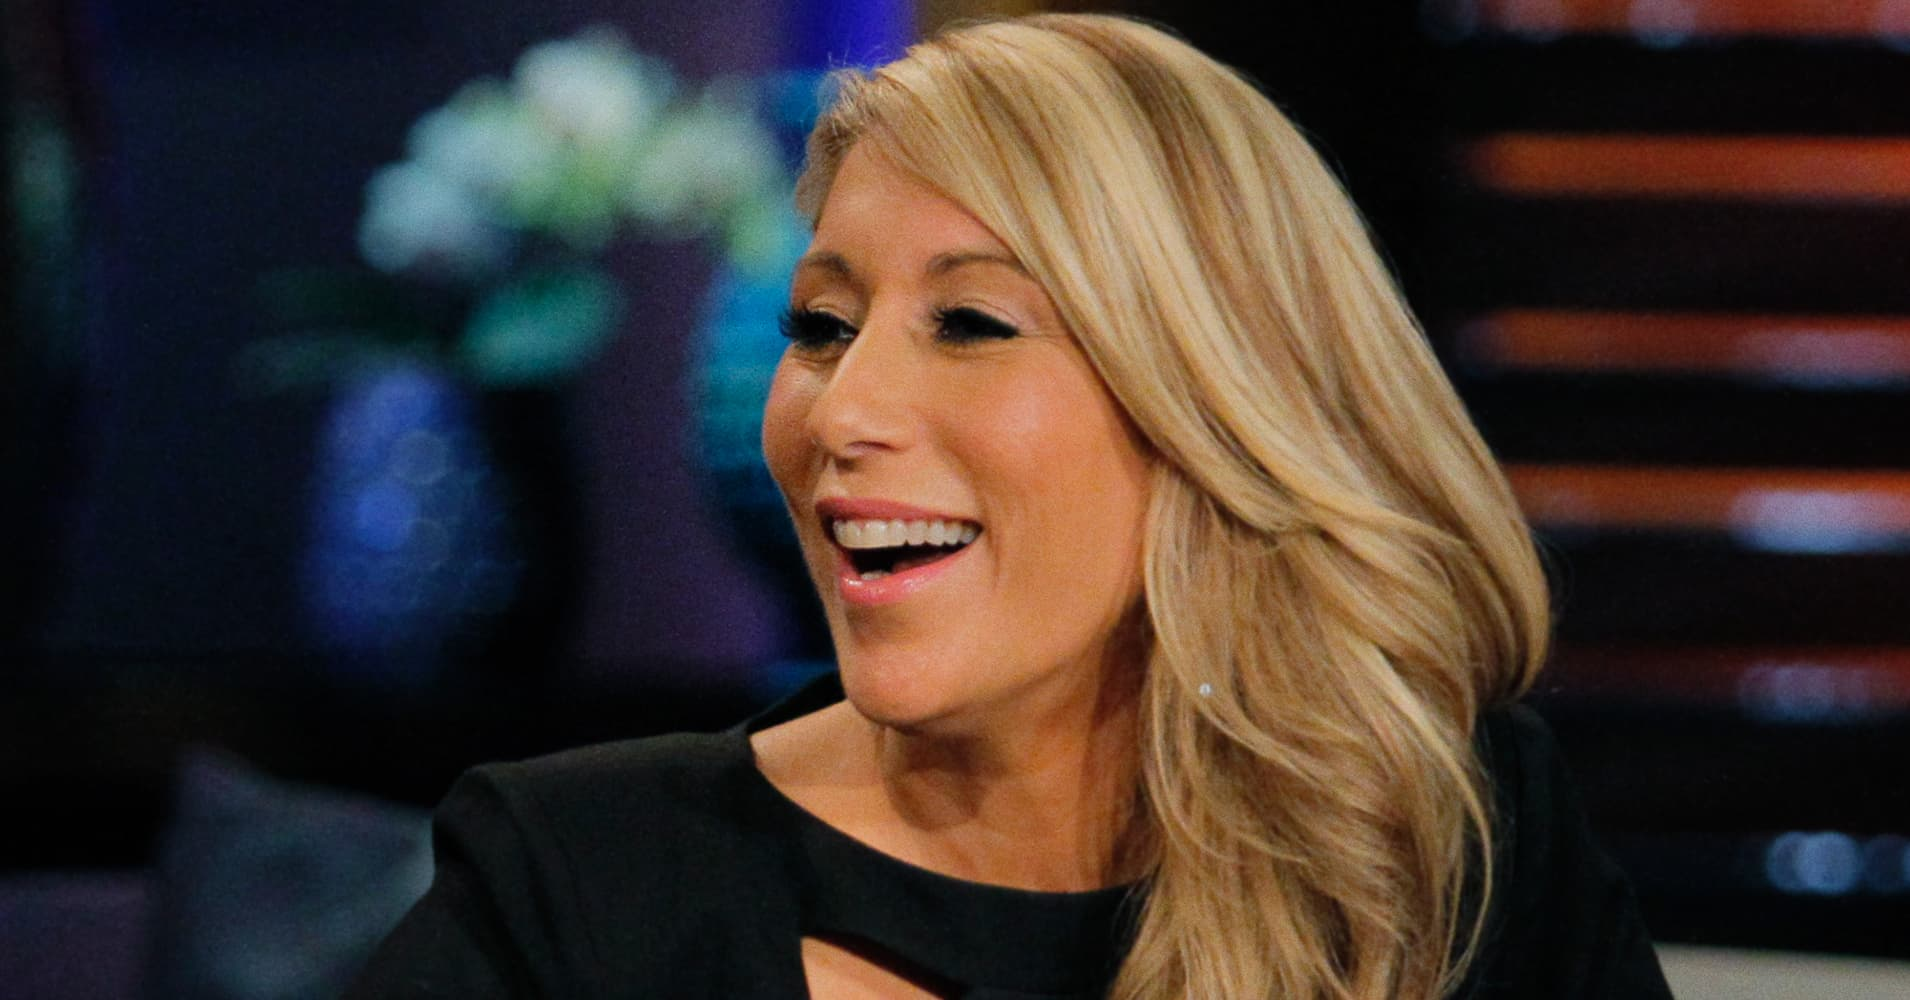 lori greiner single Shark tank investor lori greiner started with a single invention, an earring holder, in 1997 and grew it into a multimillion-dollar family of businesses with products on qvc and in the world's biggest retailers on her path to more than 400 inventions and 120 patents, she tells business insider.